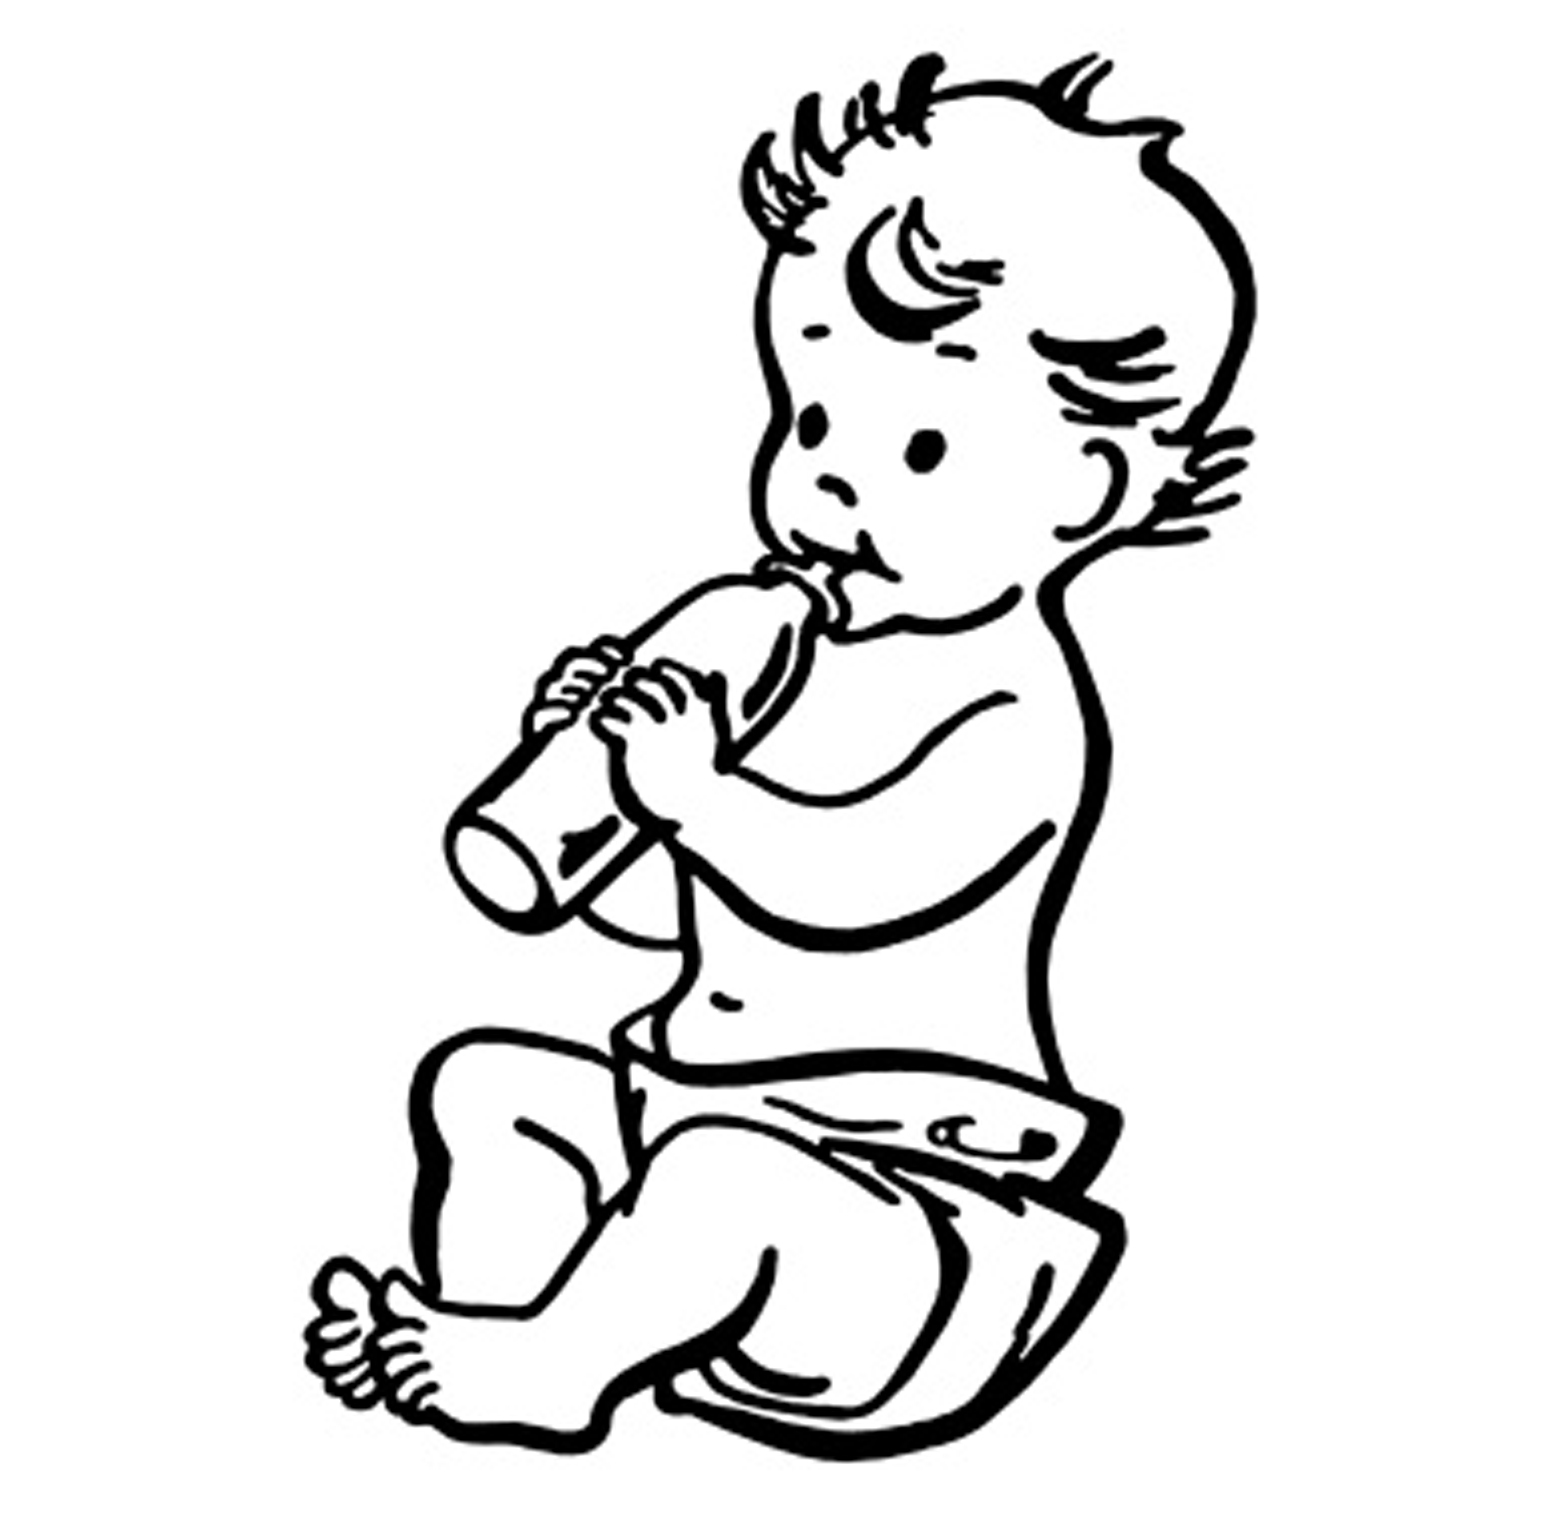 Cute baby clipart black and white banner freeuse Black And White Baby Clipart | Free download best Black And ... banner freeuse